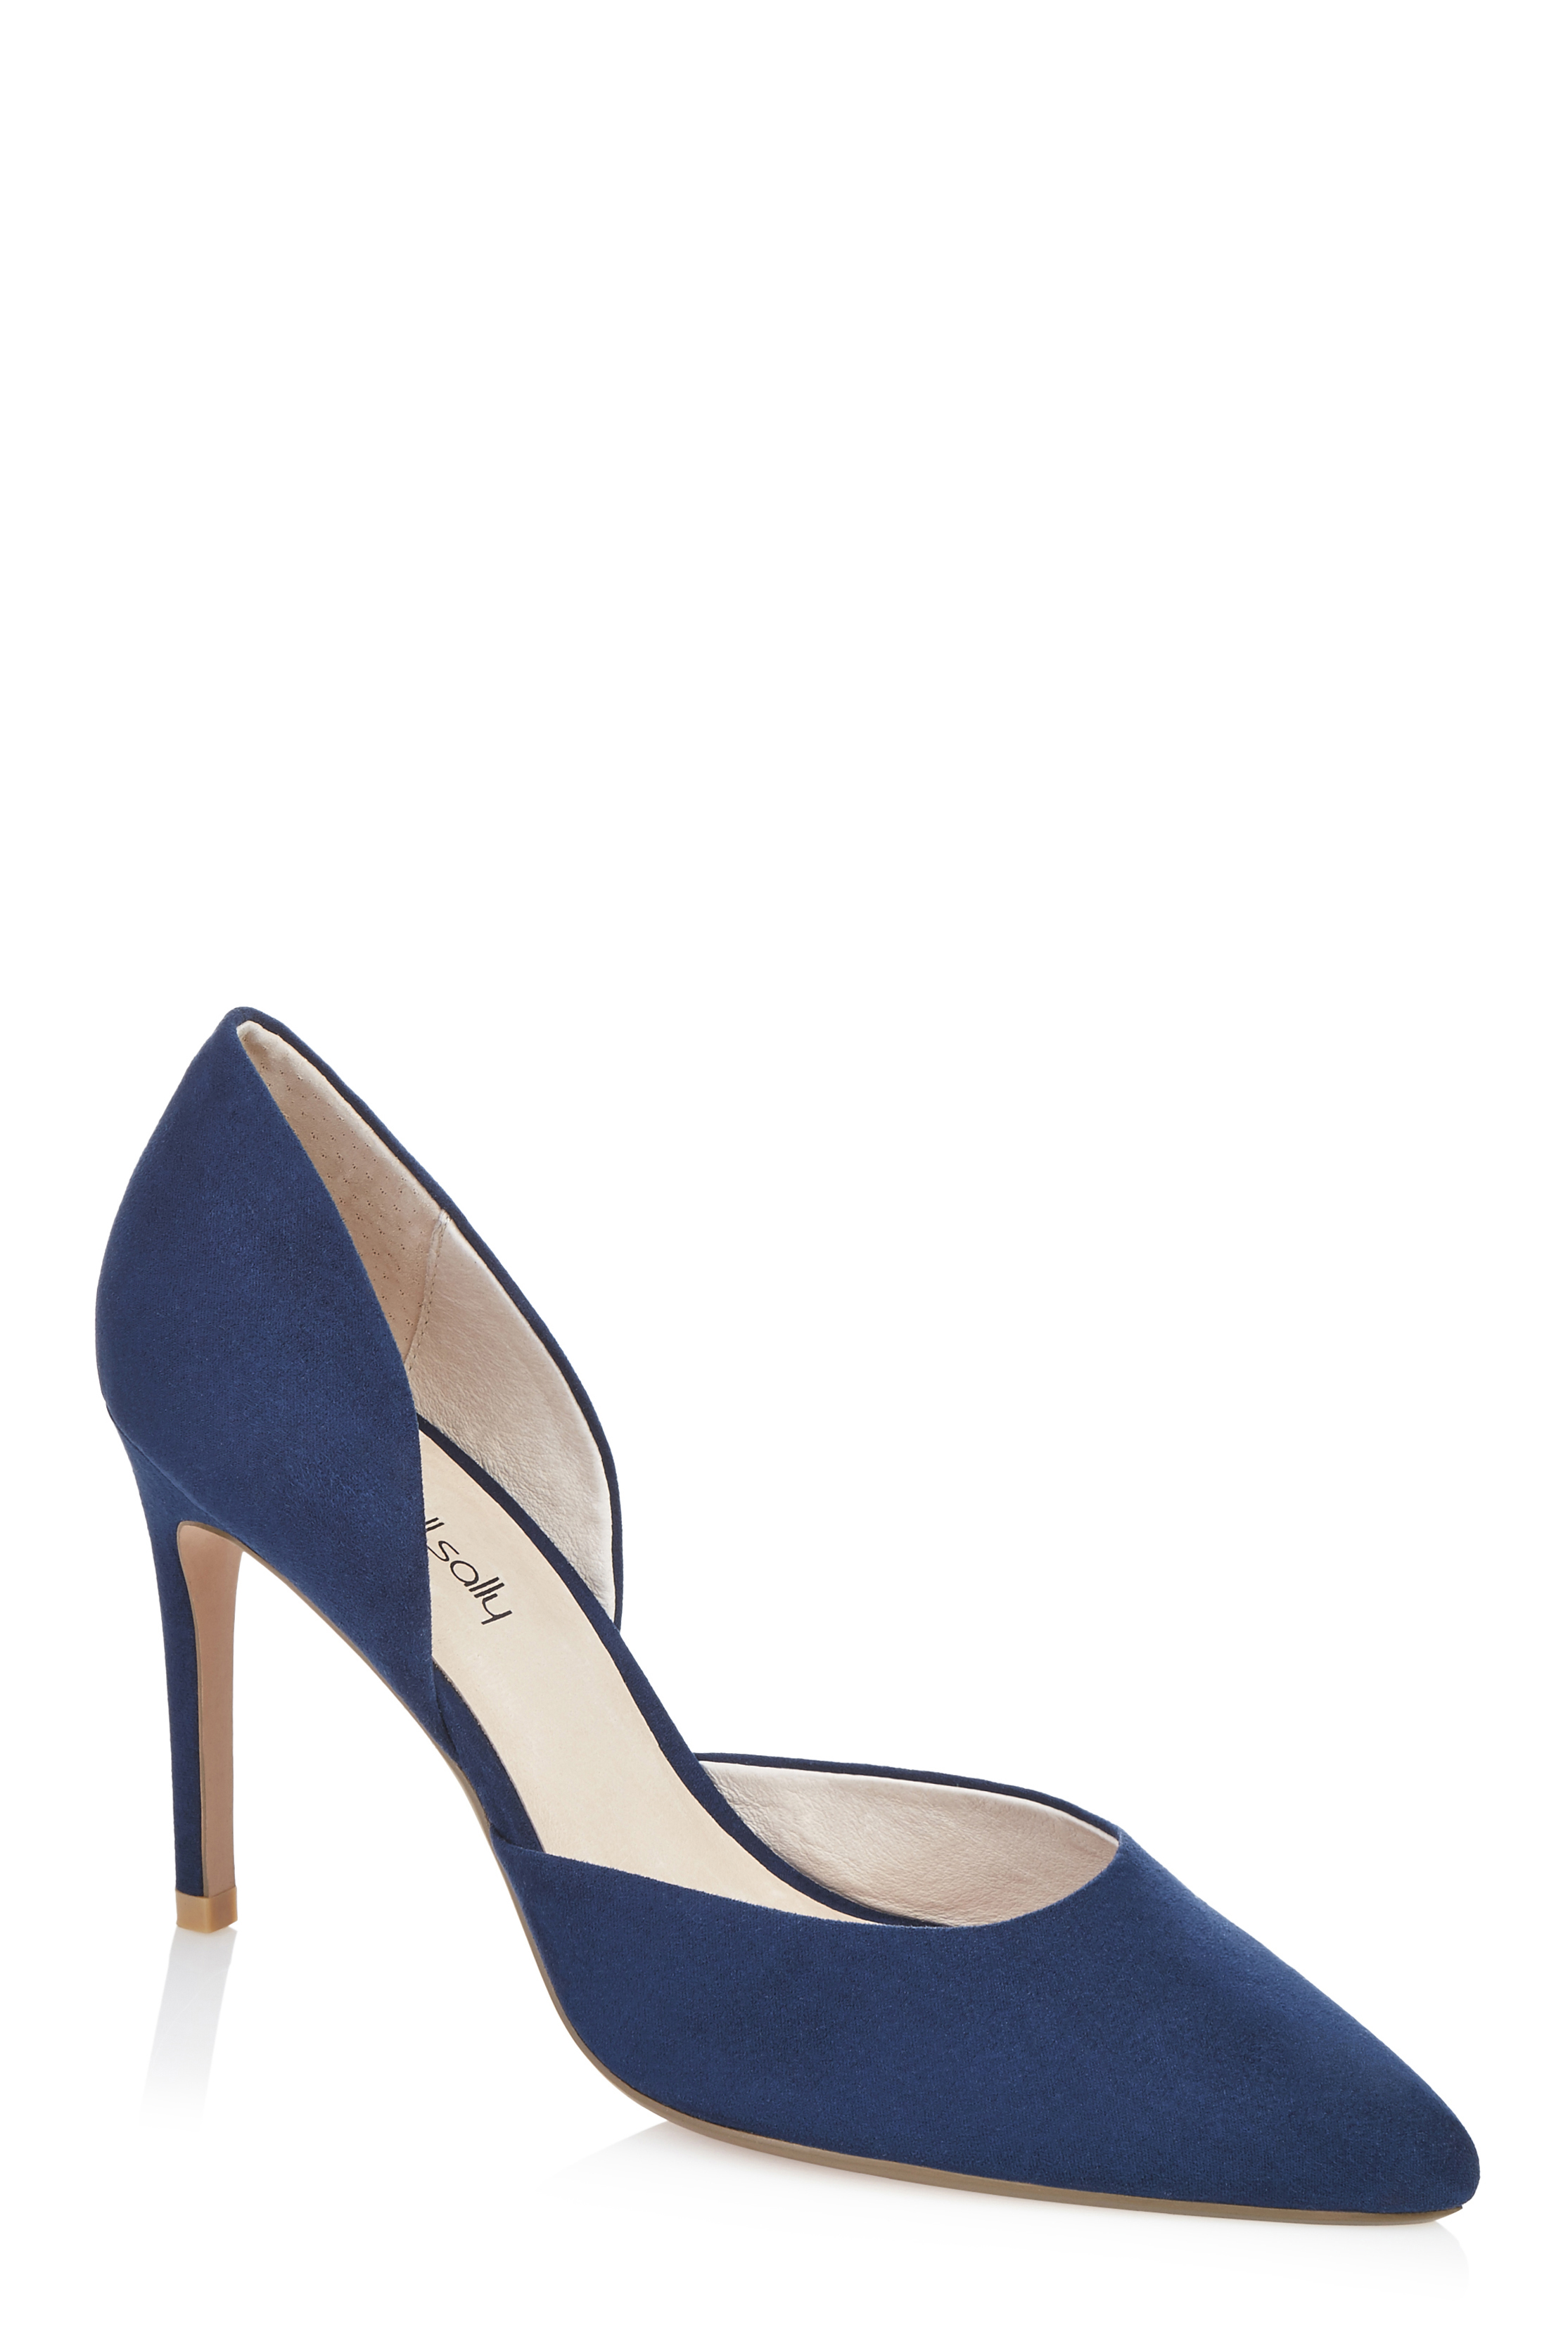 Navy Court Shoes_1.jpg